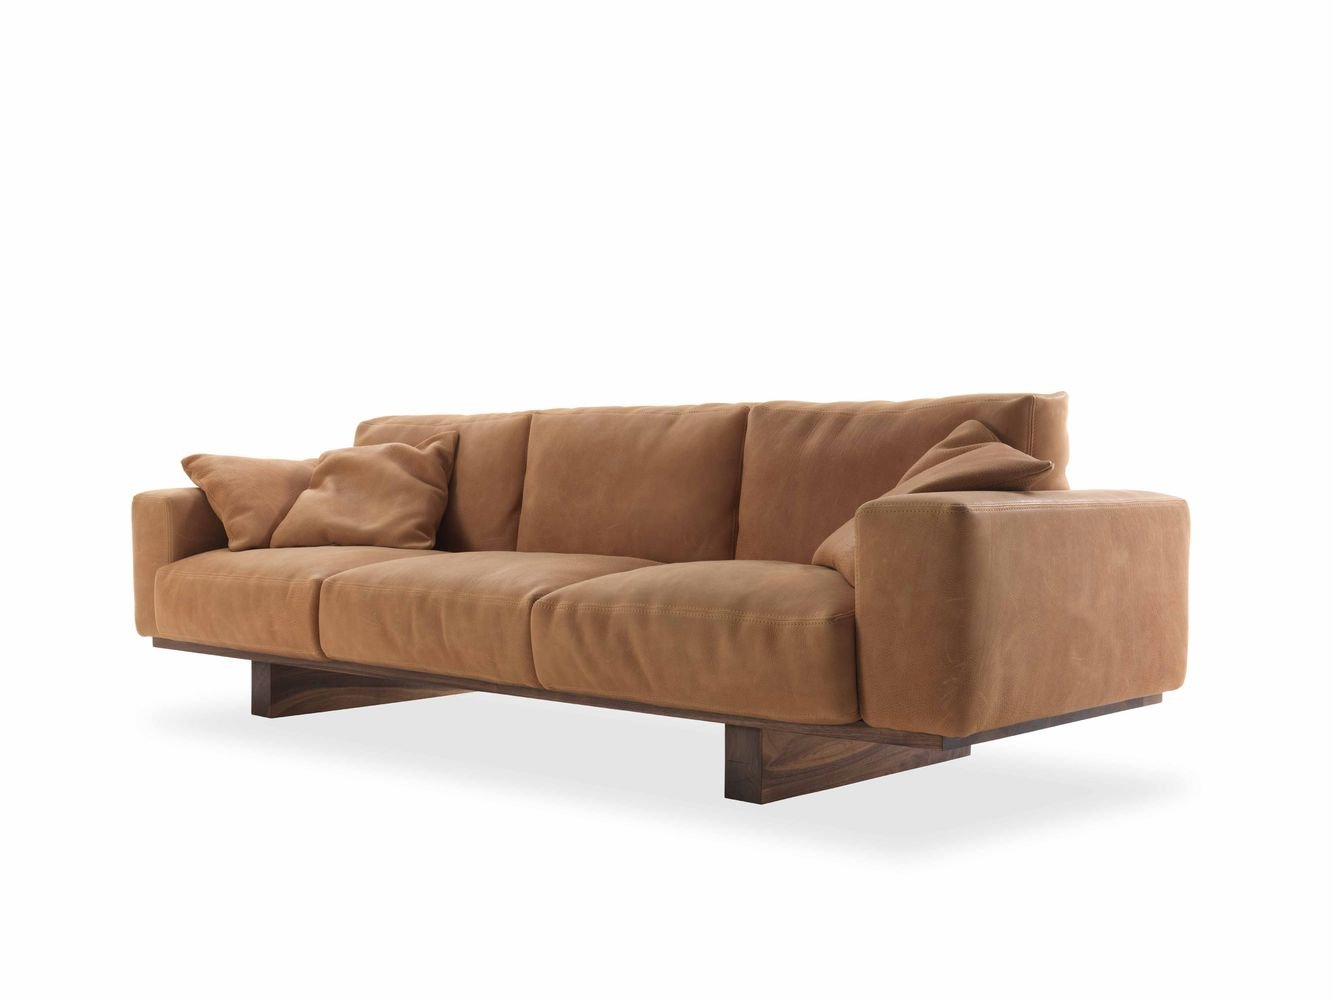 Utah Sofa from Riva 1920